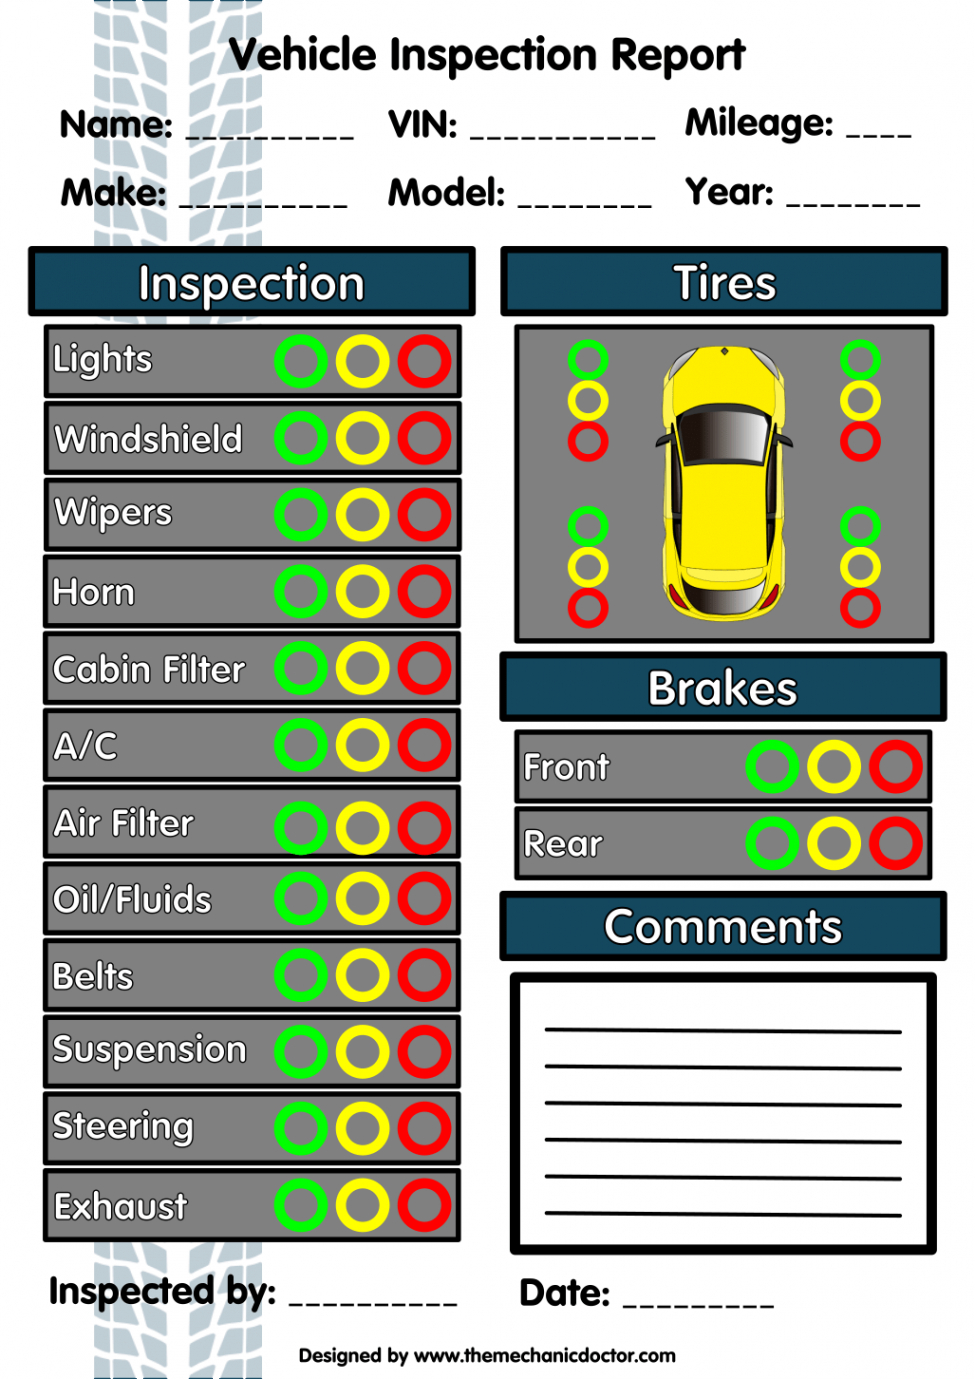 editable 6 free vehicle inspection forms  modern looking checklists mechanic checklist template word